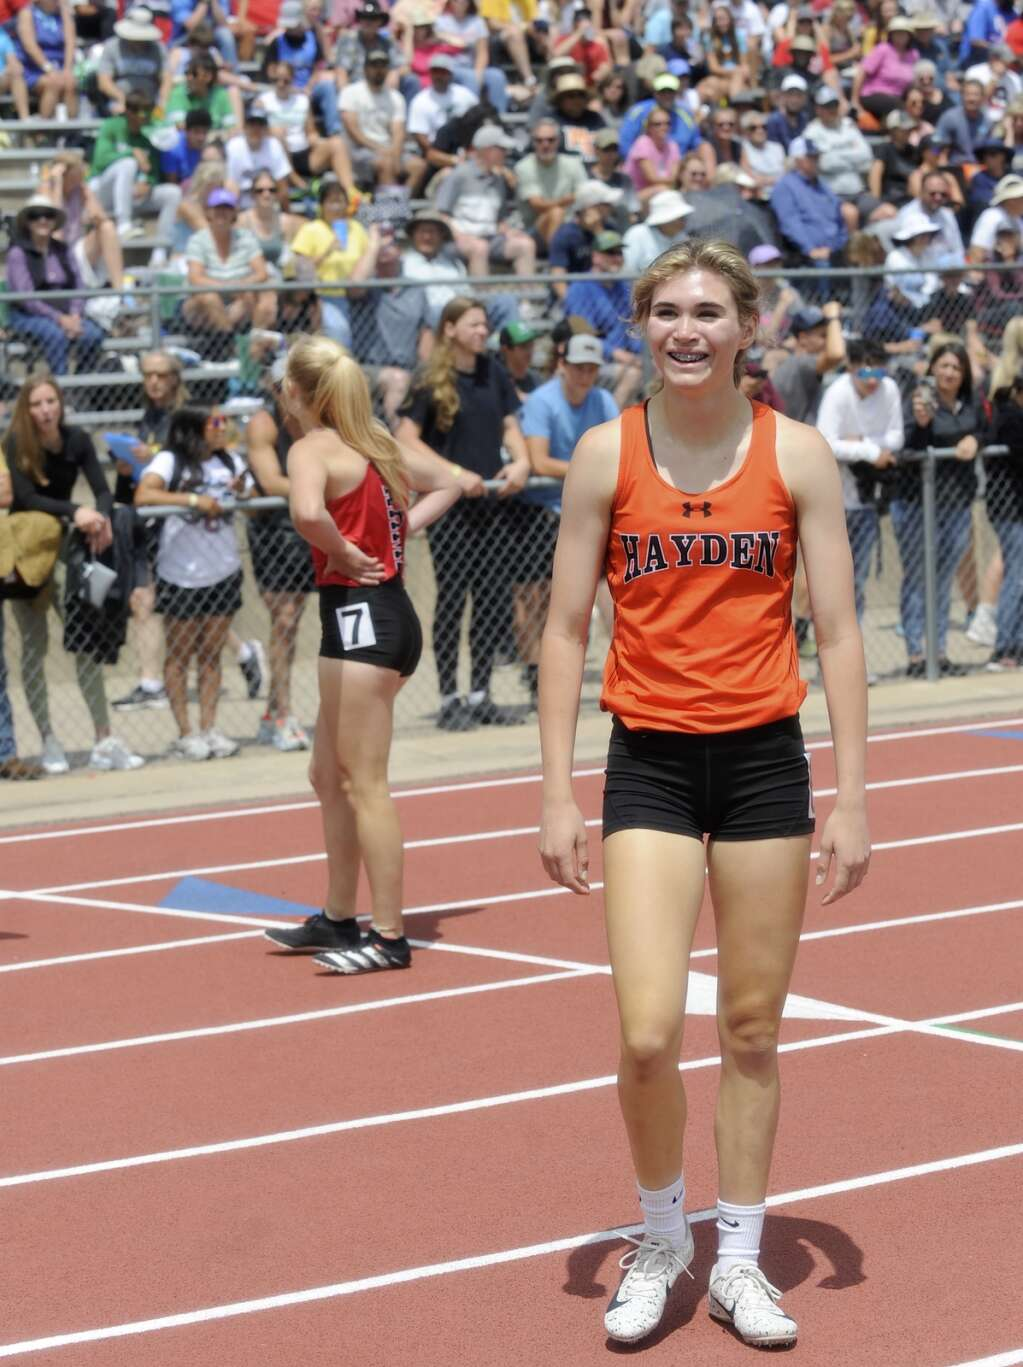 Hayden junior Jillian Bennett smiles as she sees her personal-best time of 59.25 in the 400. She earned second in the event at the CHSAA State Track and Field Championships at JeffCo Stadium on Saturday. (Photo by Shelby Reardon)